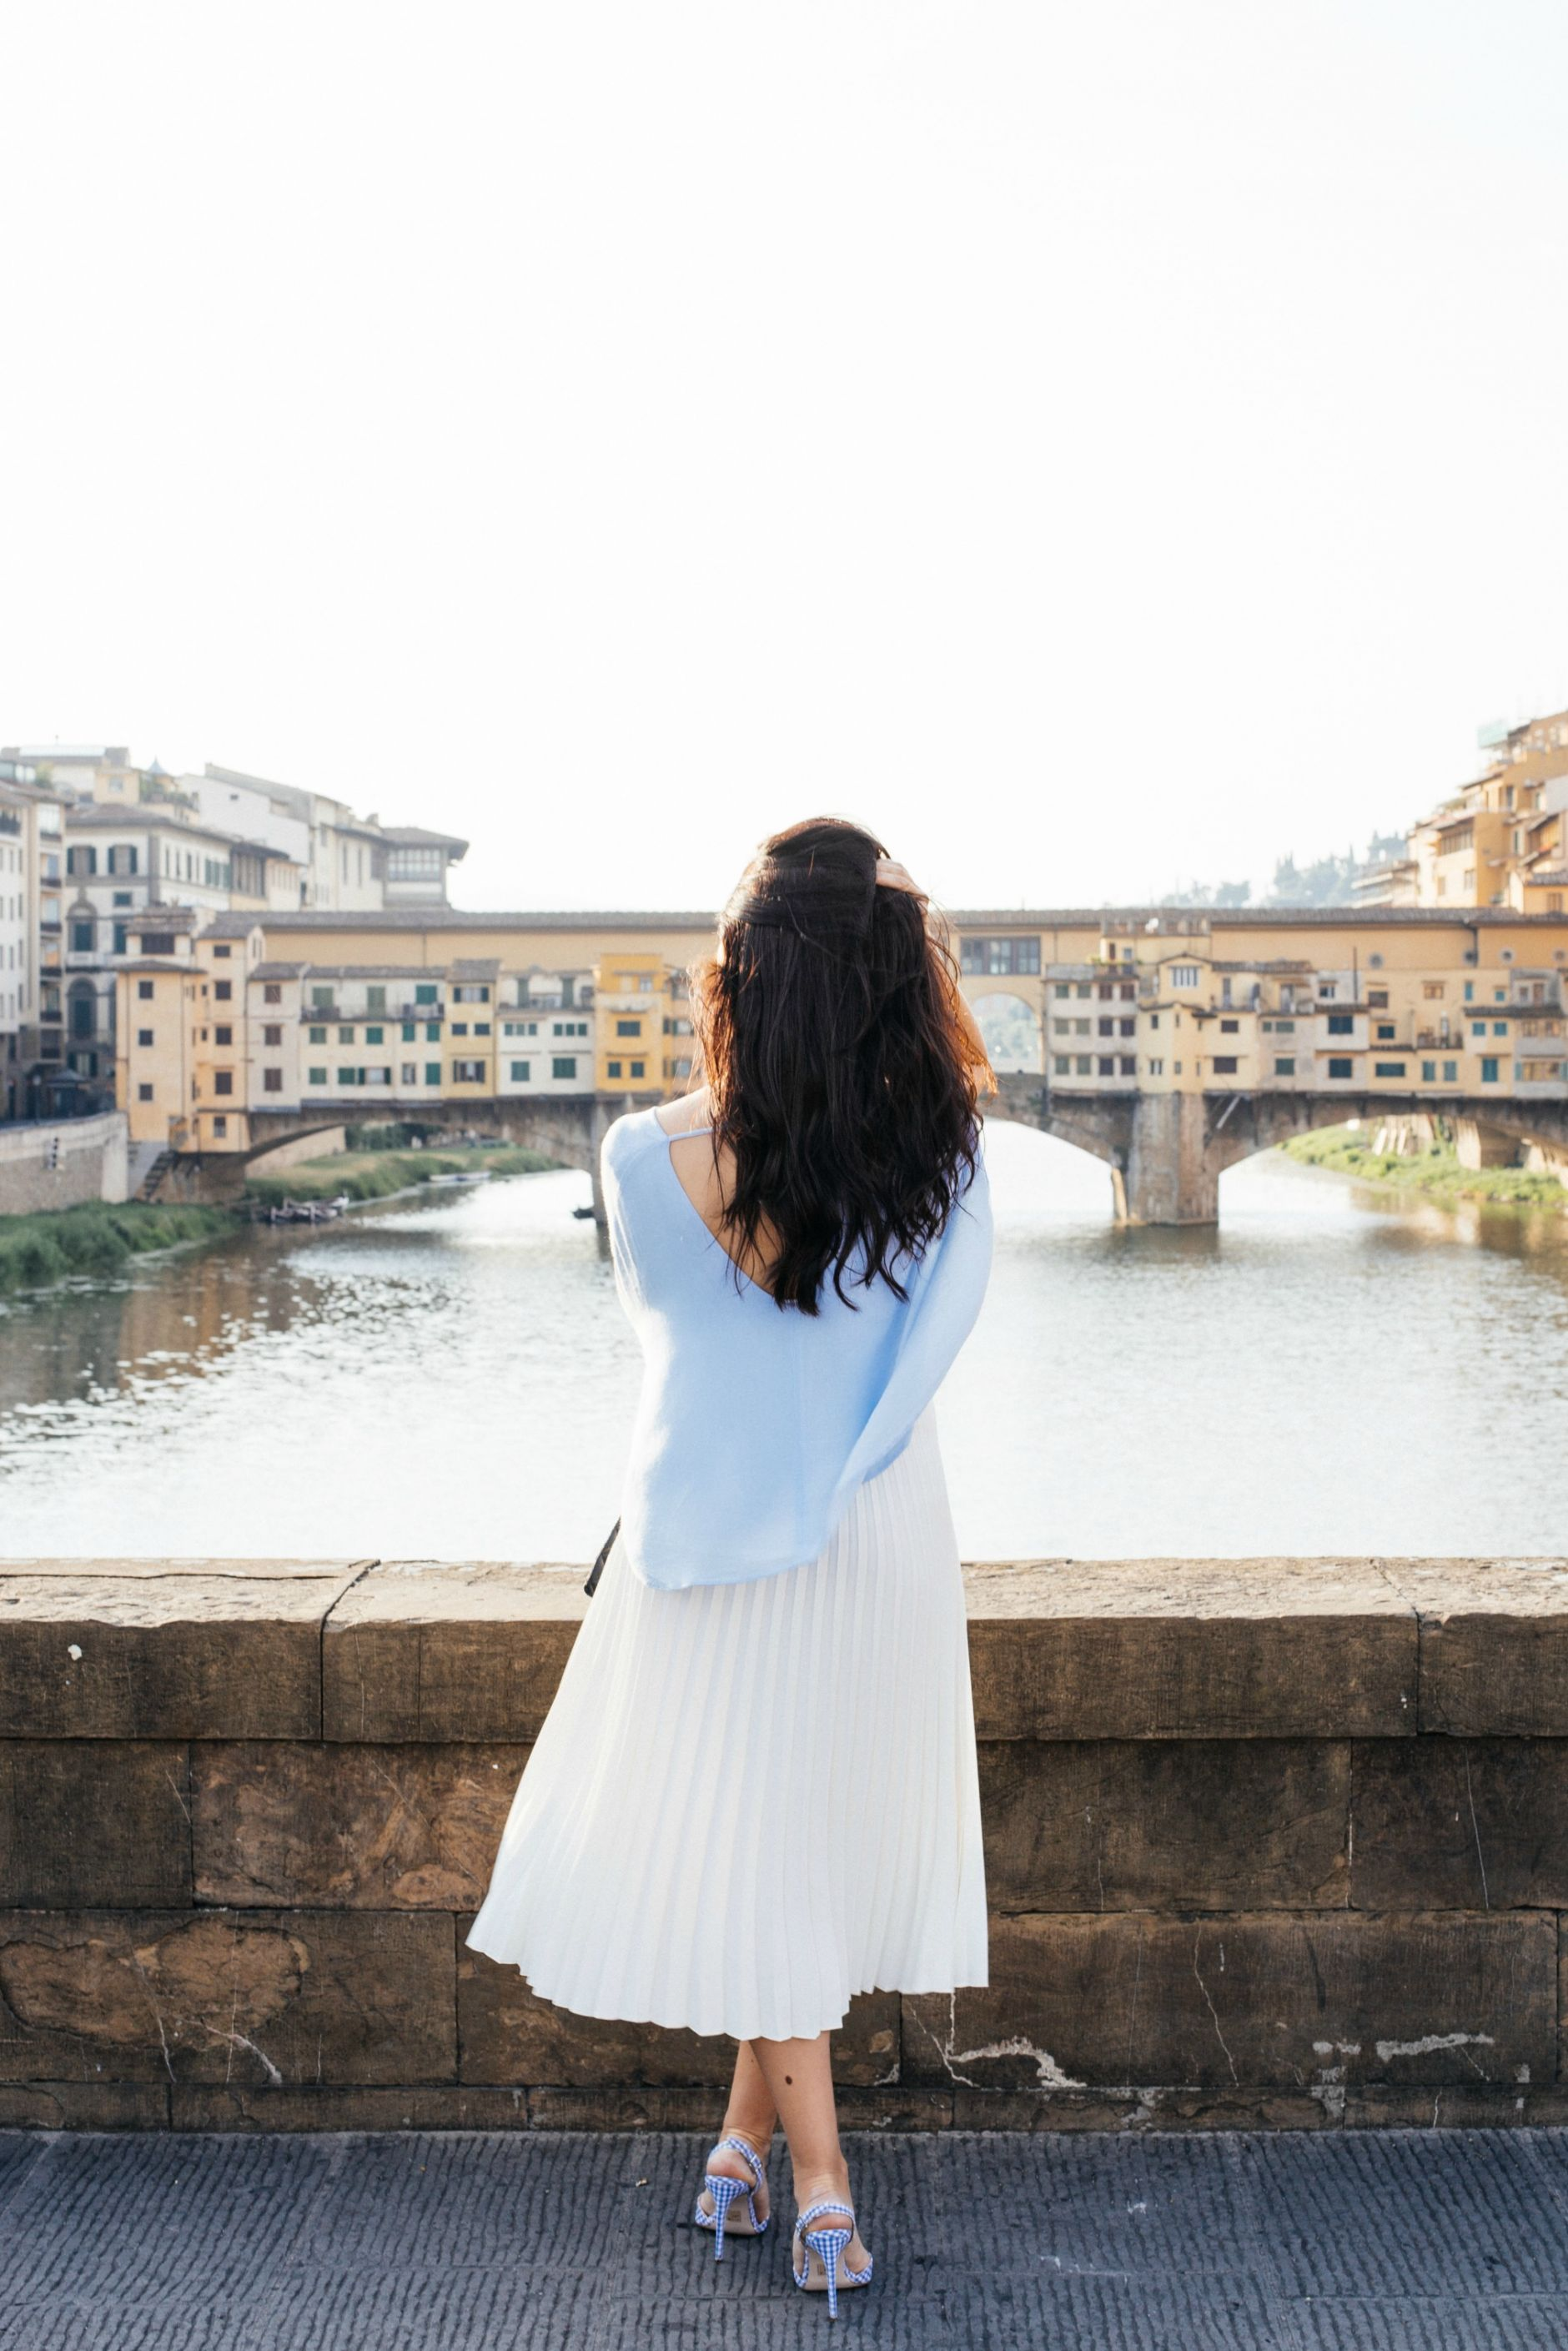 sunrise-sunset-firenze-glorence-italy-ponte-vecchio-bridge-summer-2016-disi-couture-35